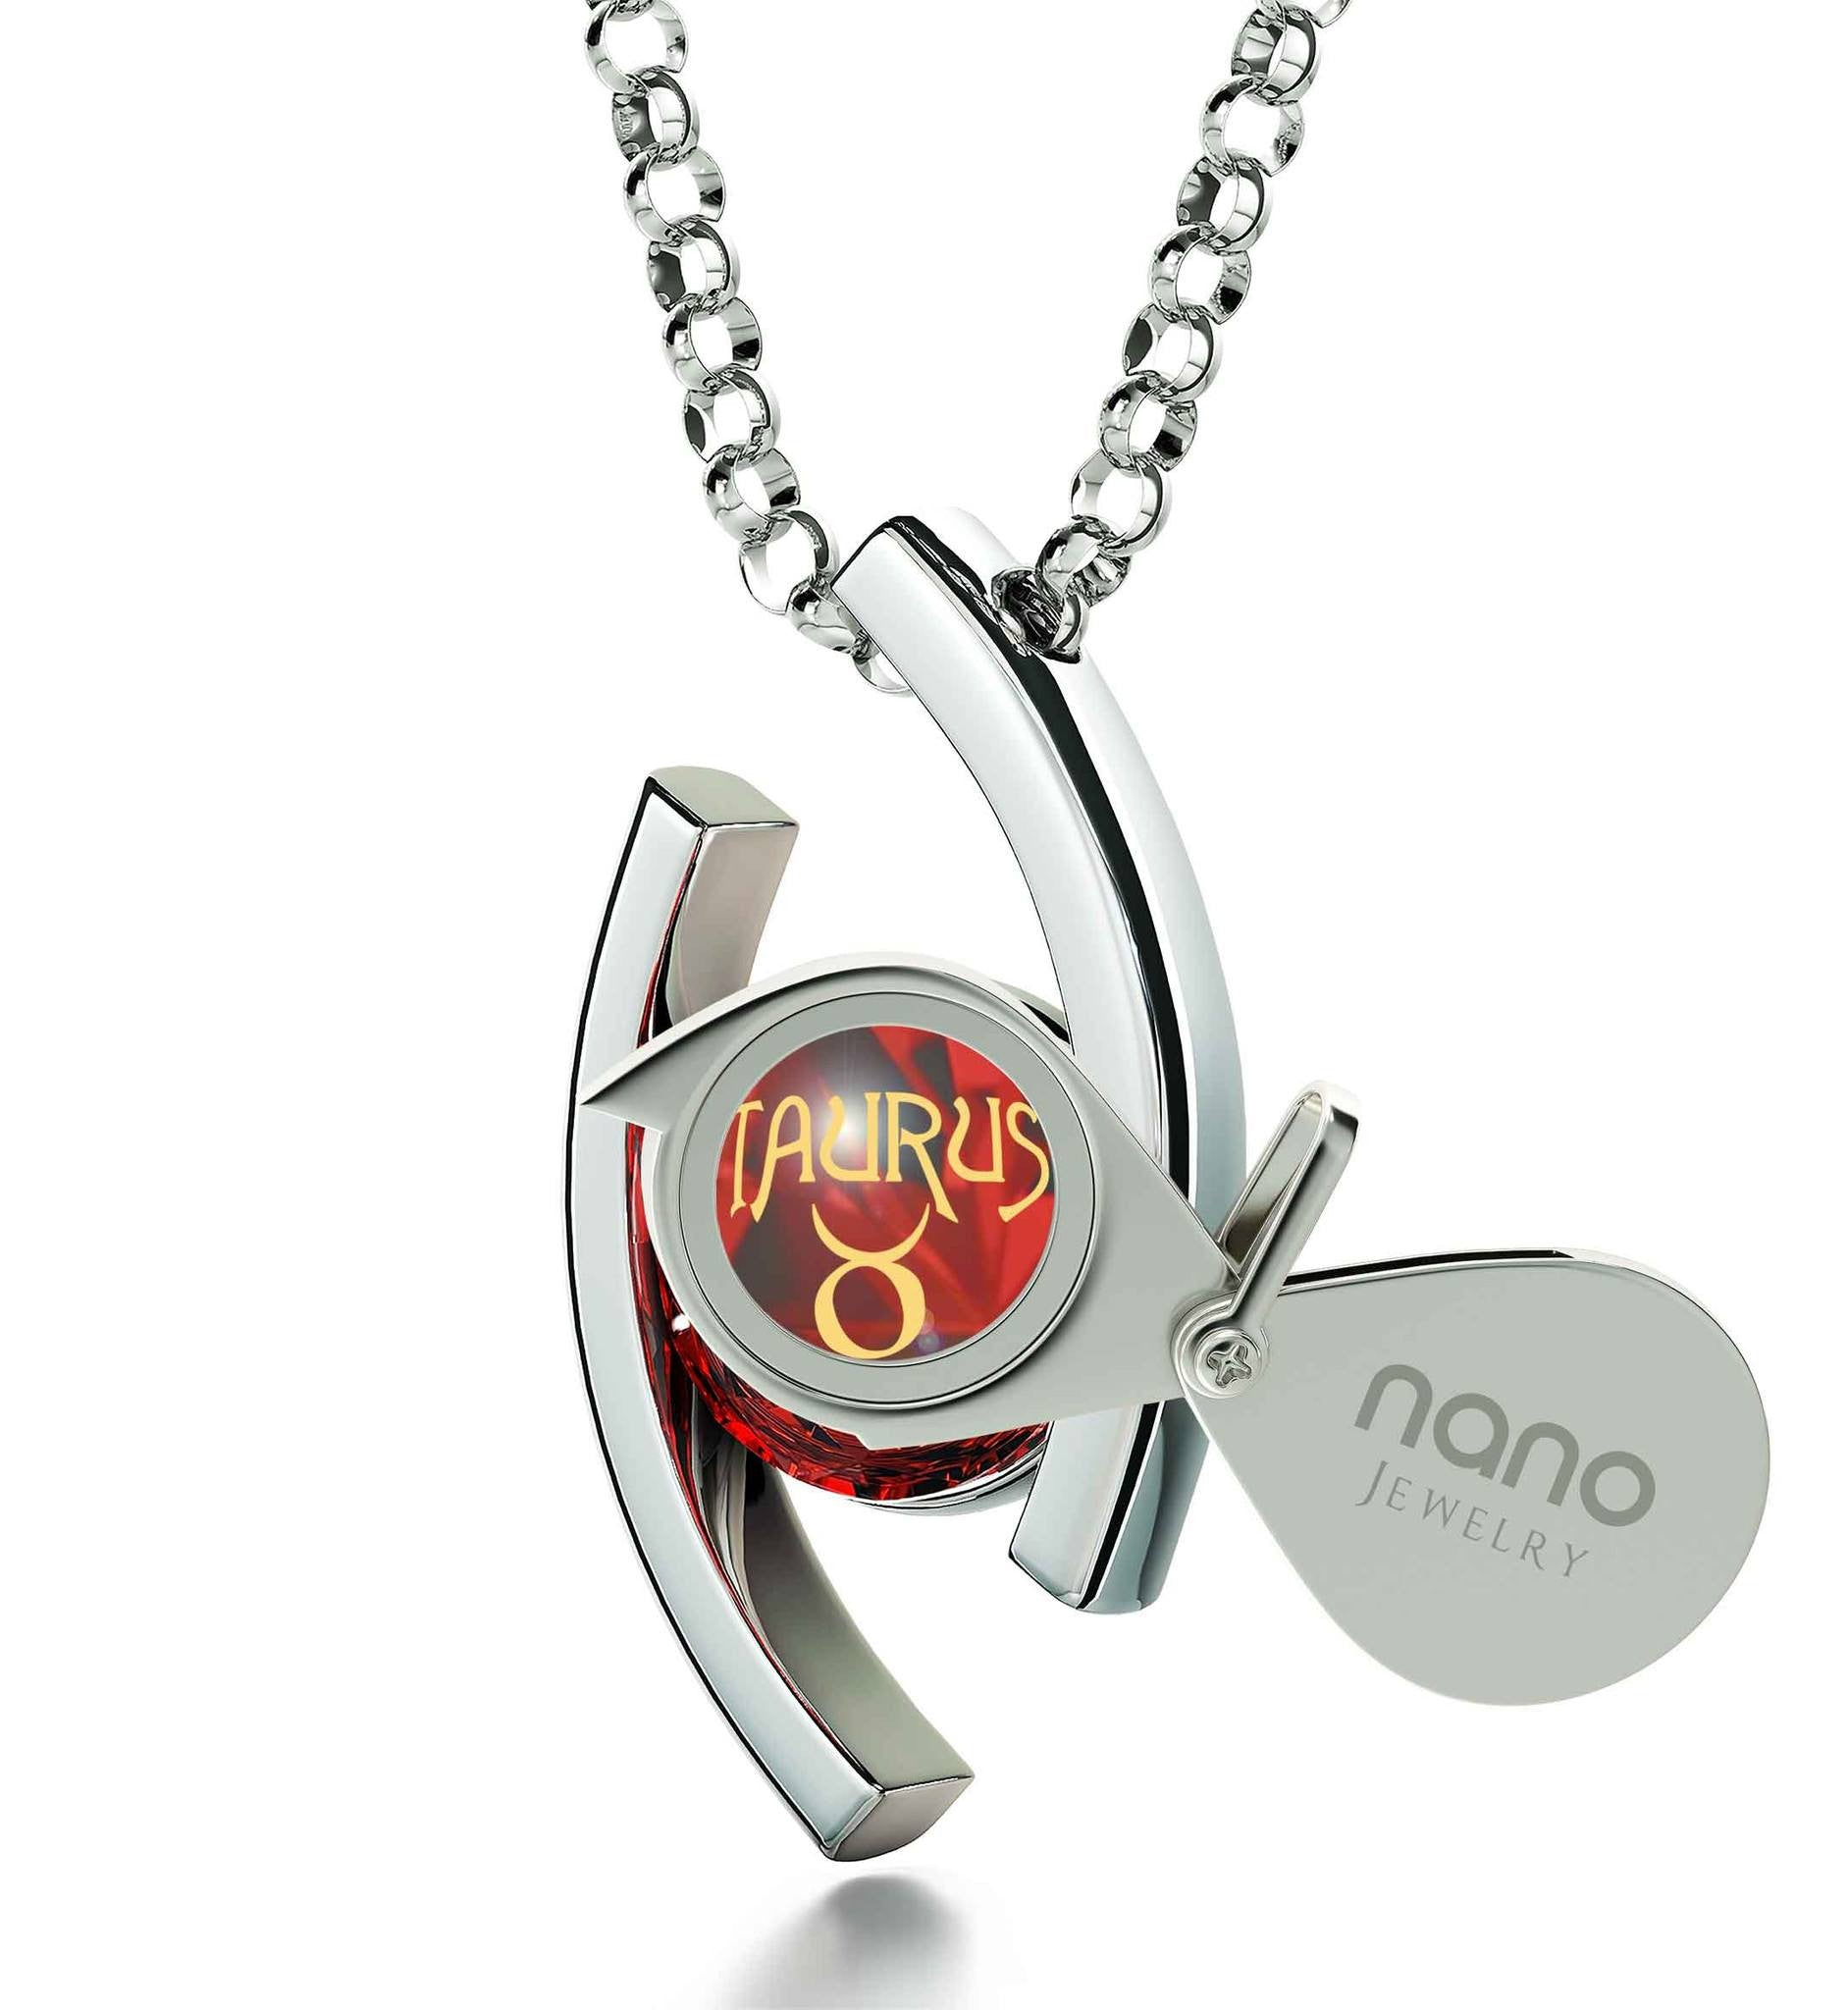 """Taurus Jewelry With Zodiac Imprint, Top Valentines Gifts for Her, Cool Gifts for Girlfriend, 14k White Gold Necklace"""